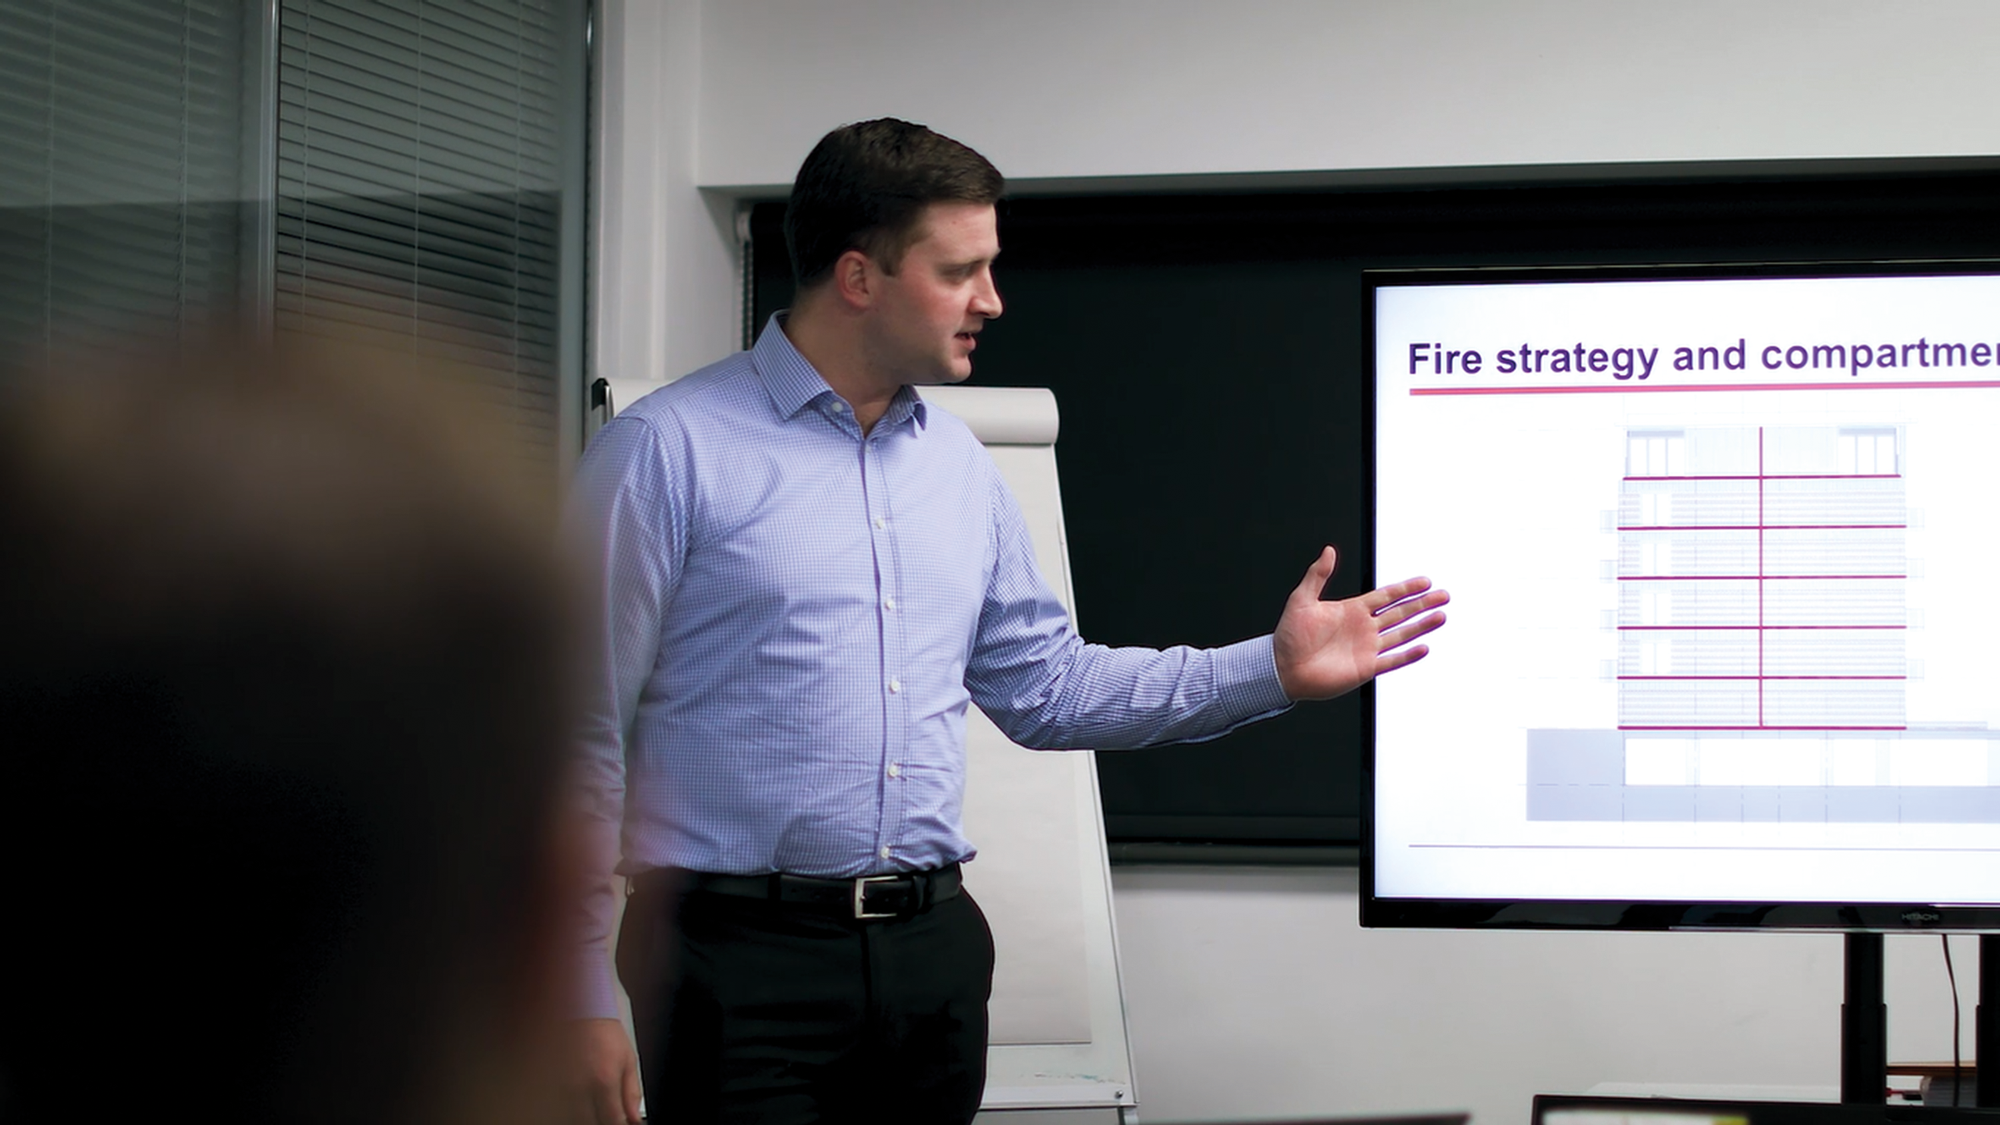 Educating the construction industry about firestopping is key.